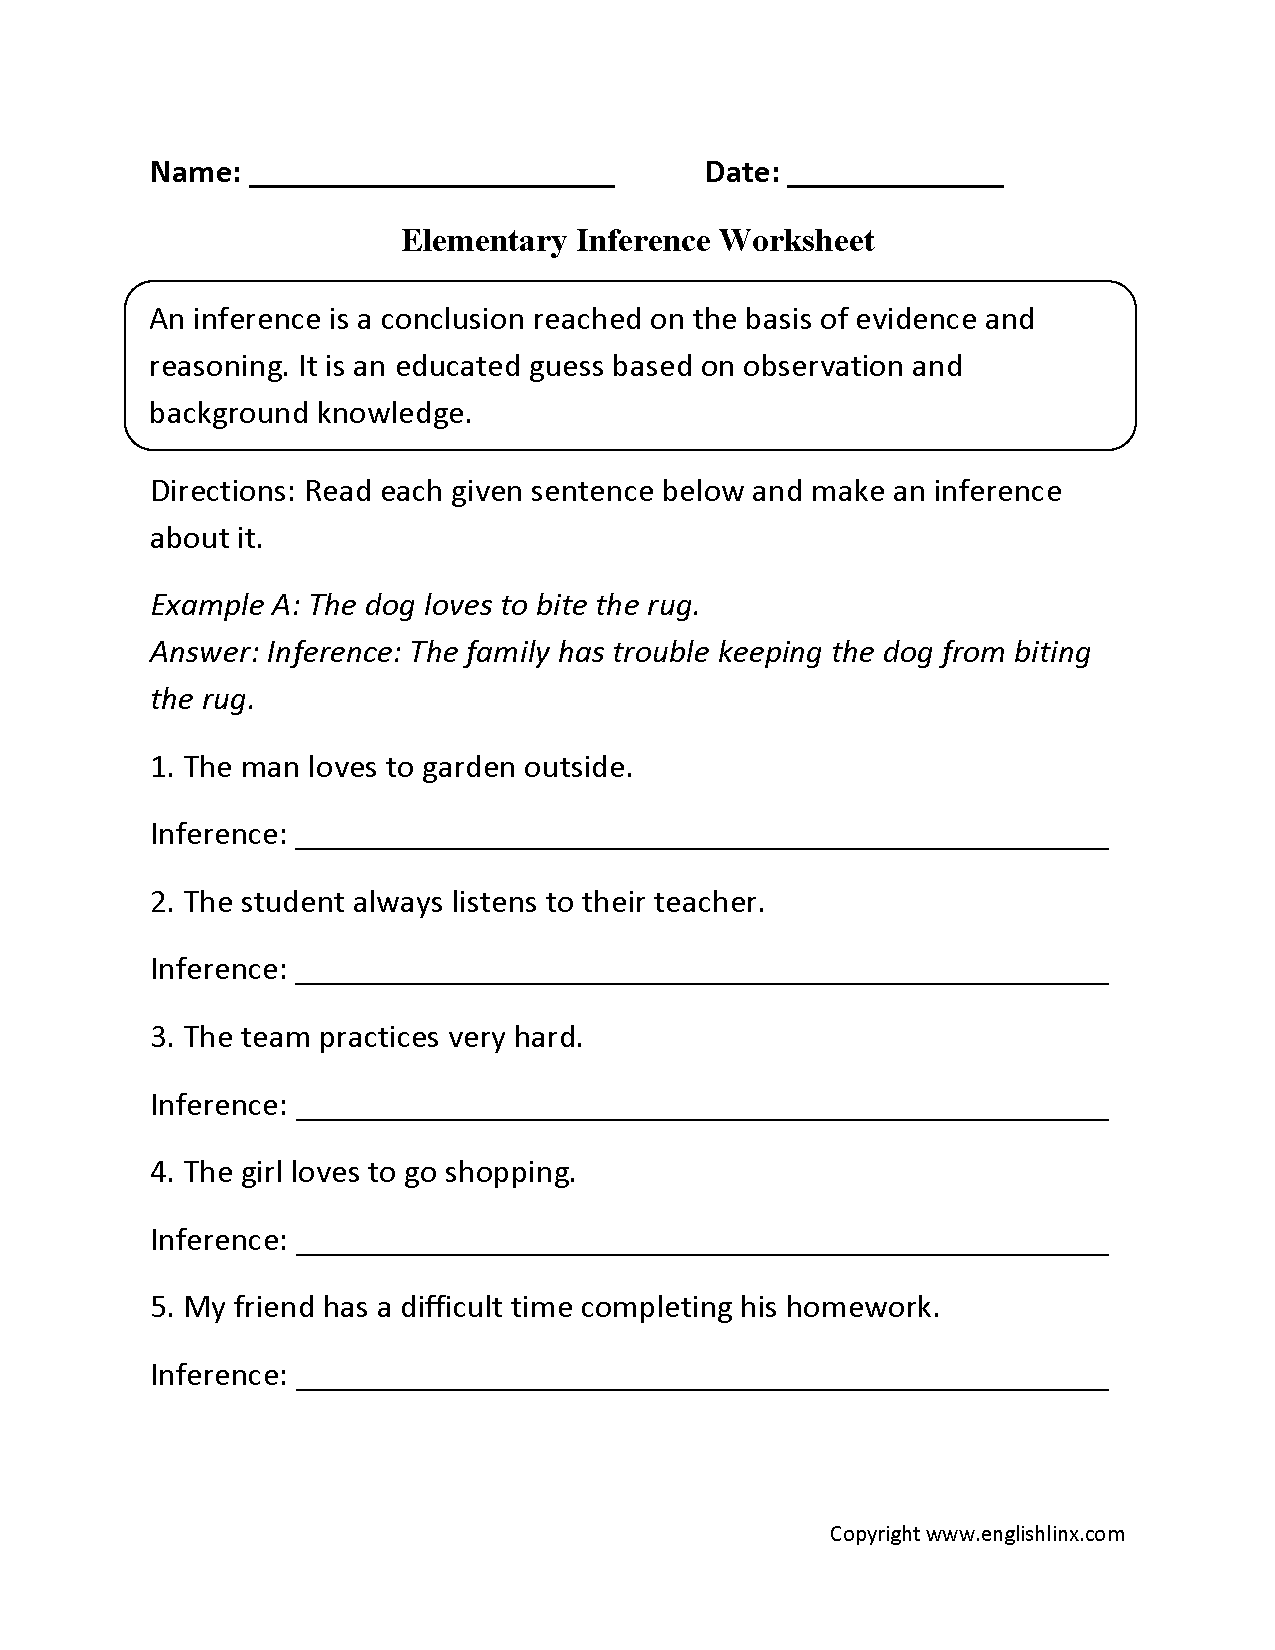 Reading Worksheets – Inferences Worksheet 2